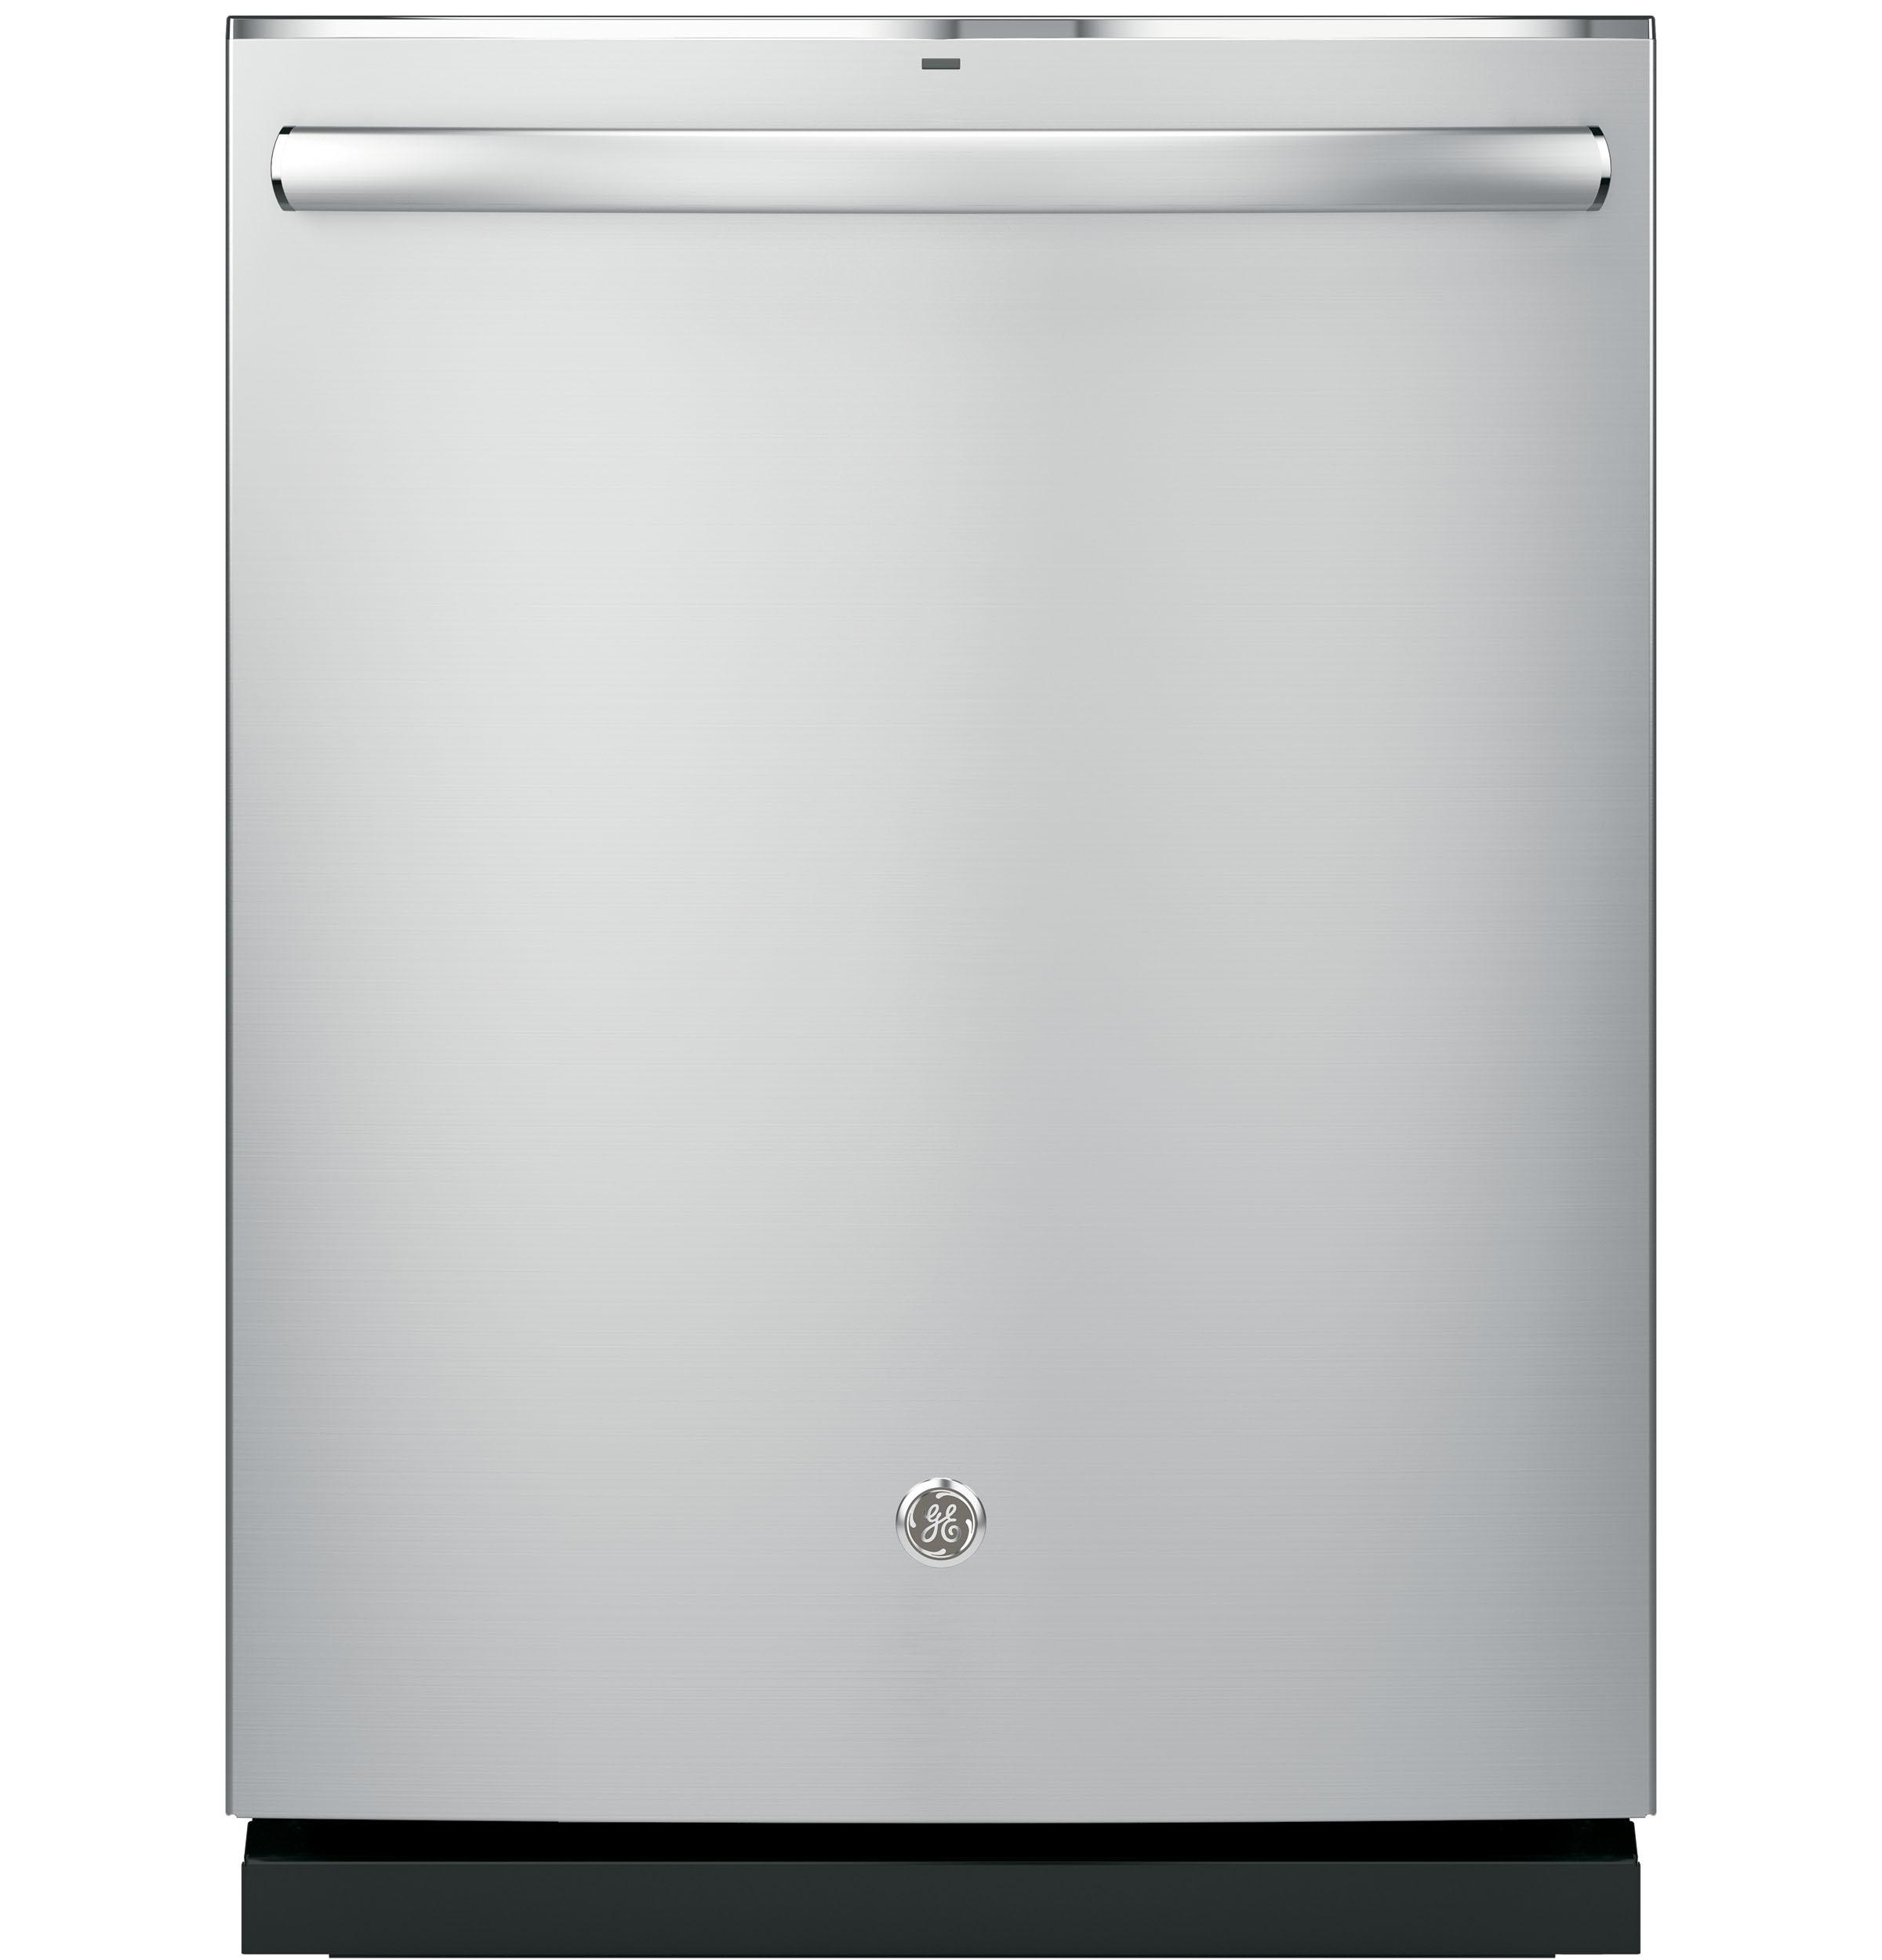 GE(R) Stainless Steel Interior Dishwasher with Hidden Controls